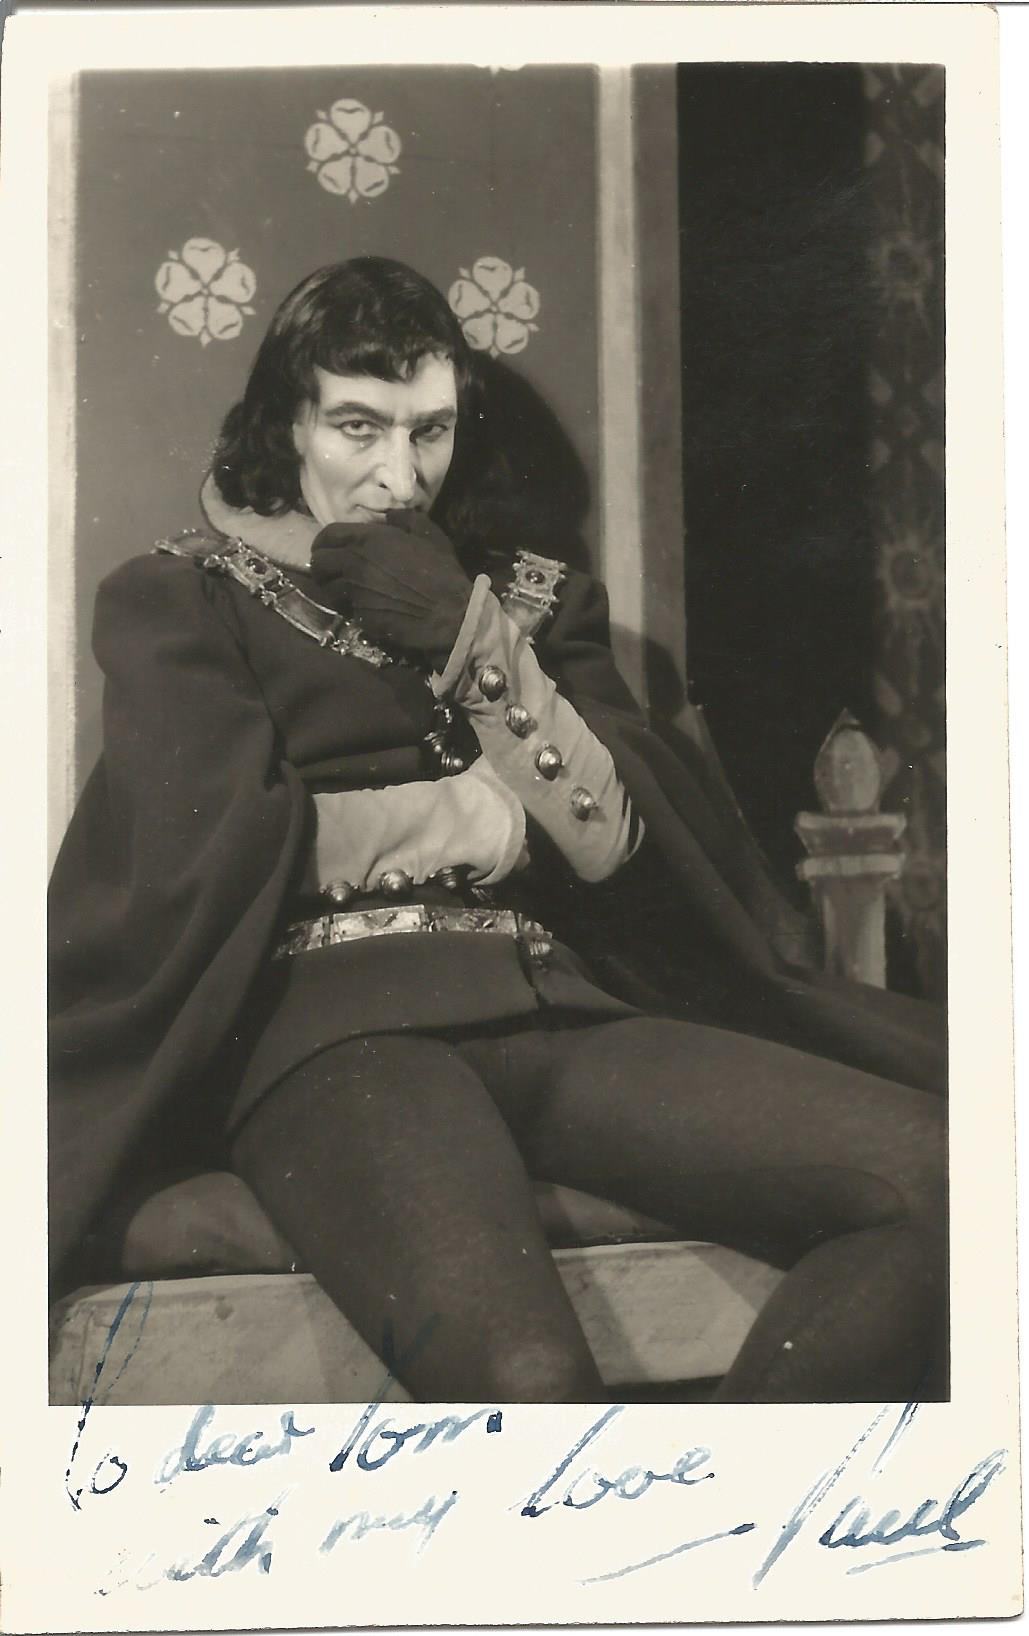 Actor Paul Daneman vintage signed 5½x3½ black and white photo as Henry VI in 1952. Paul Frederick